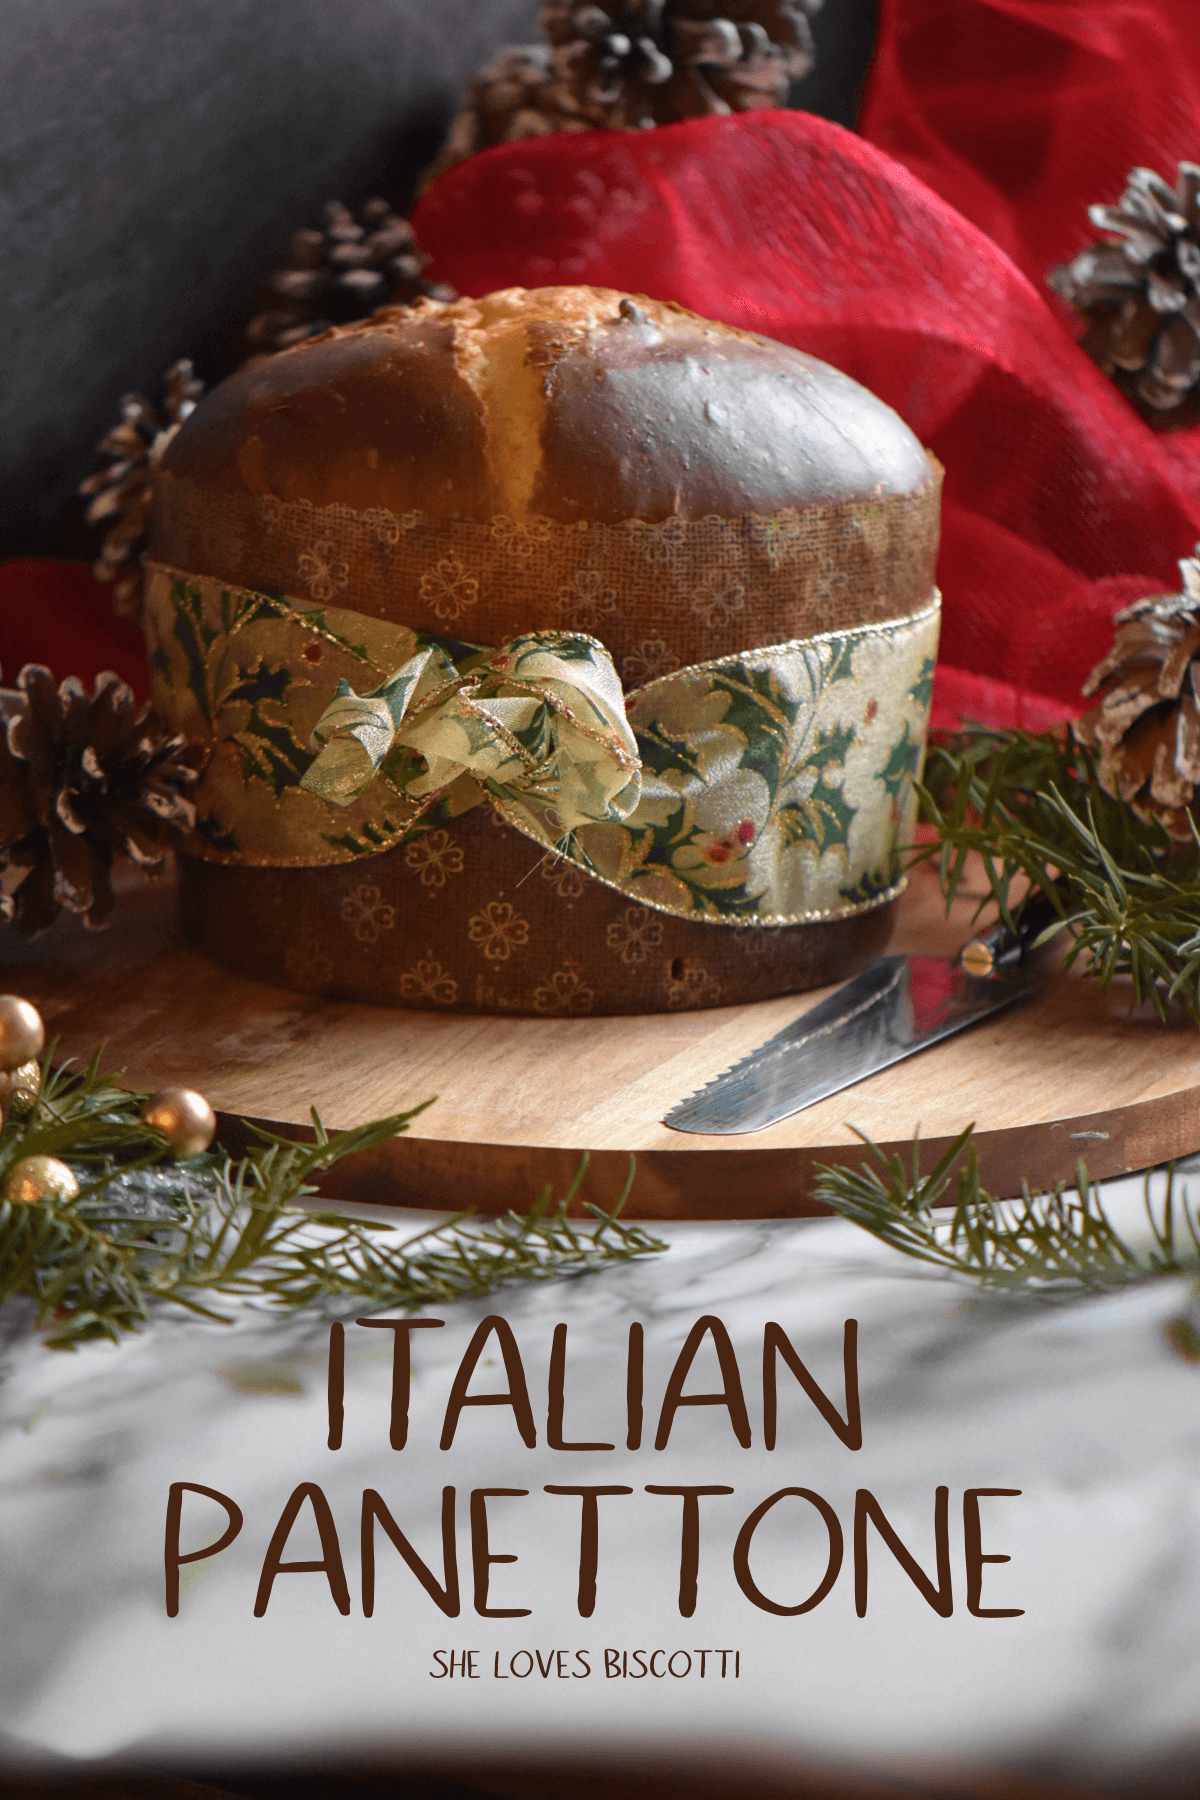 Zia Michelinas Panettone wrapped with a ribbon.